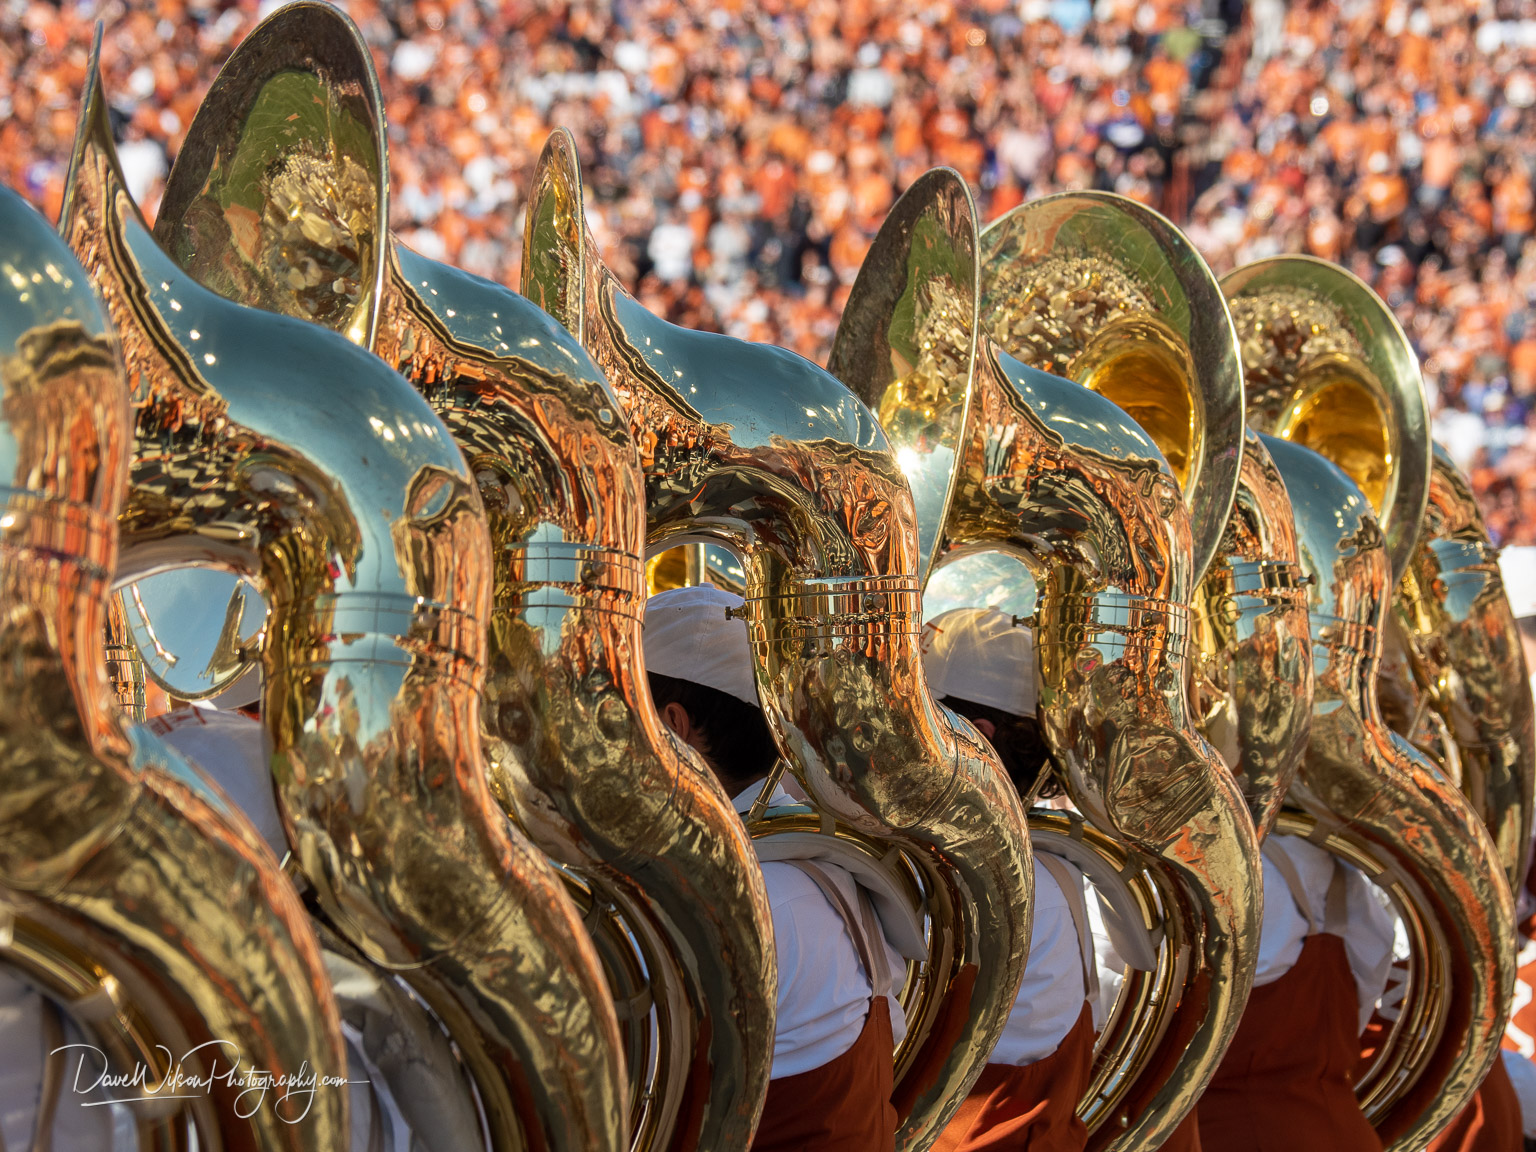 Texas Tubas Dave Wilson Photography